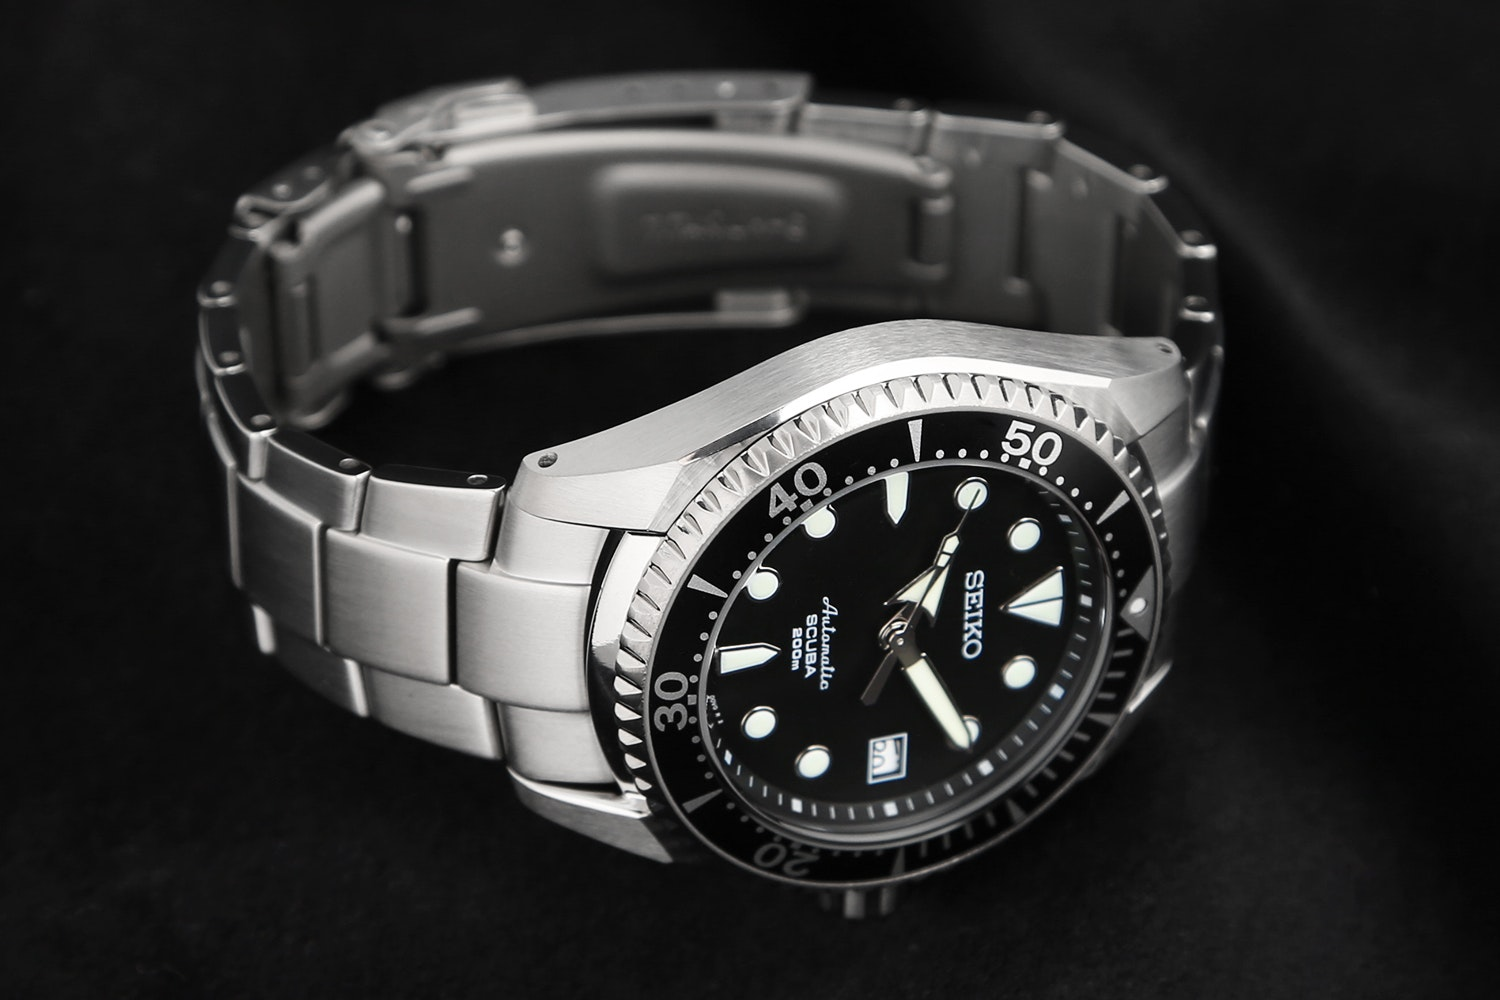 Seiko Shogun Titanium SBDC007 Watch